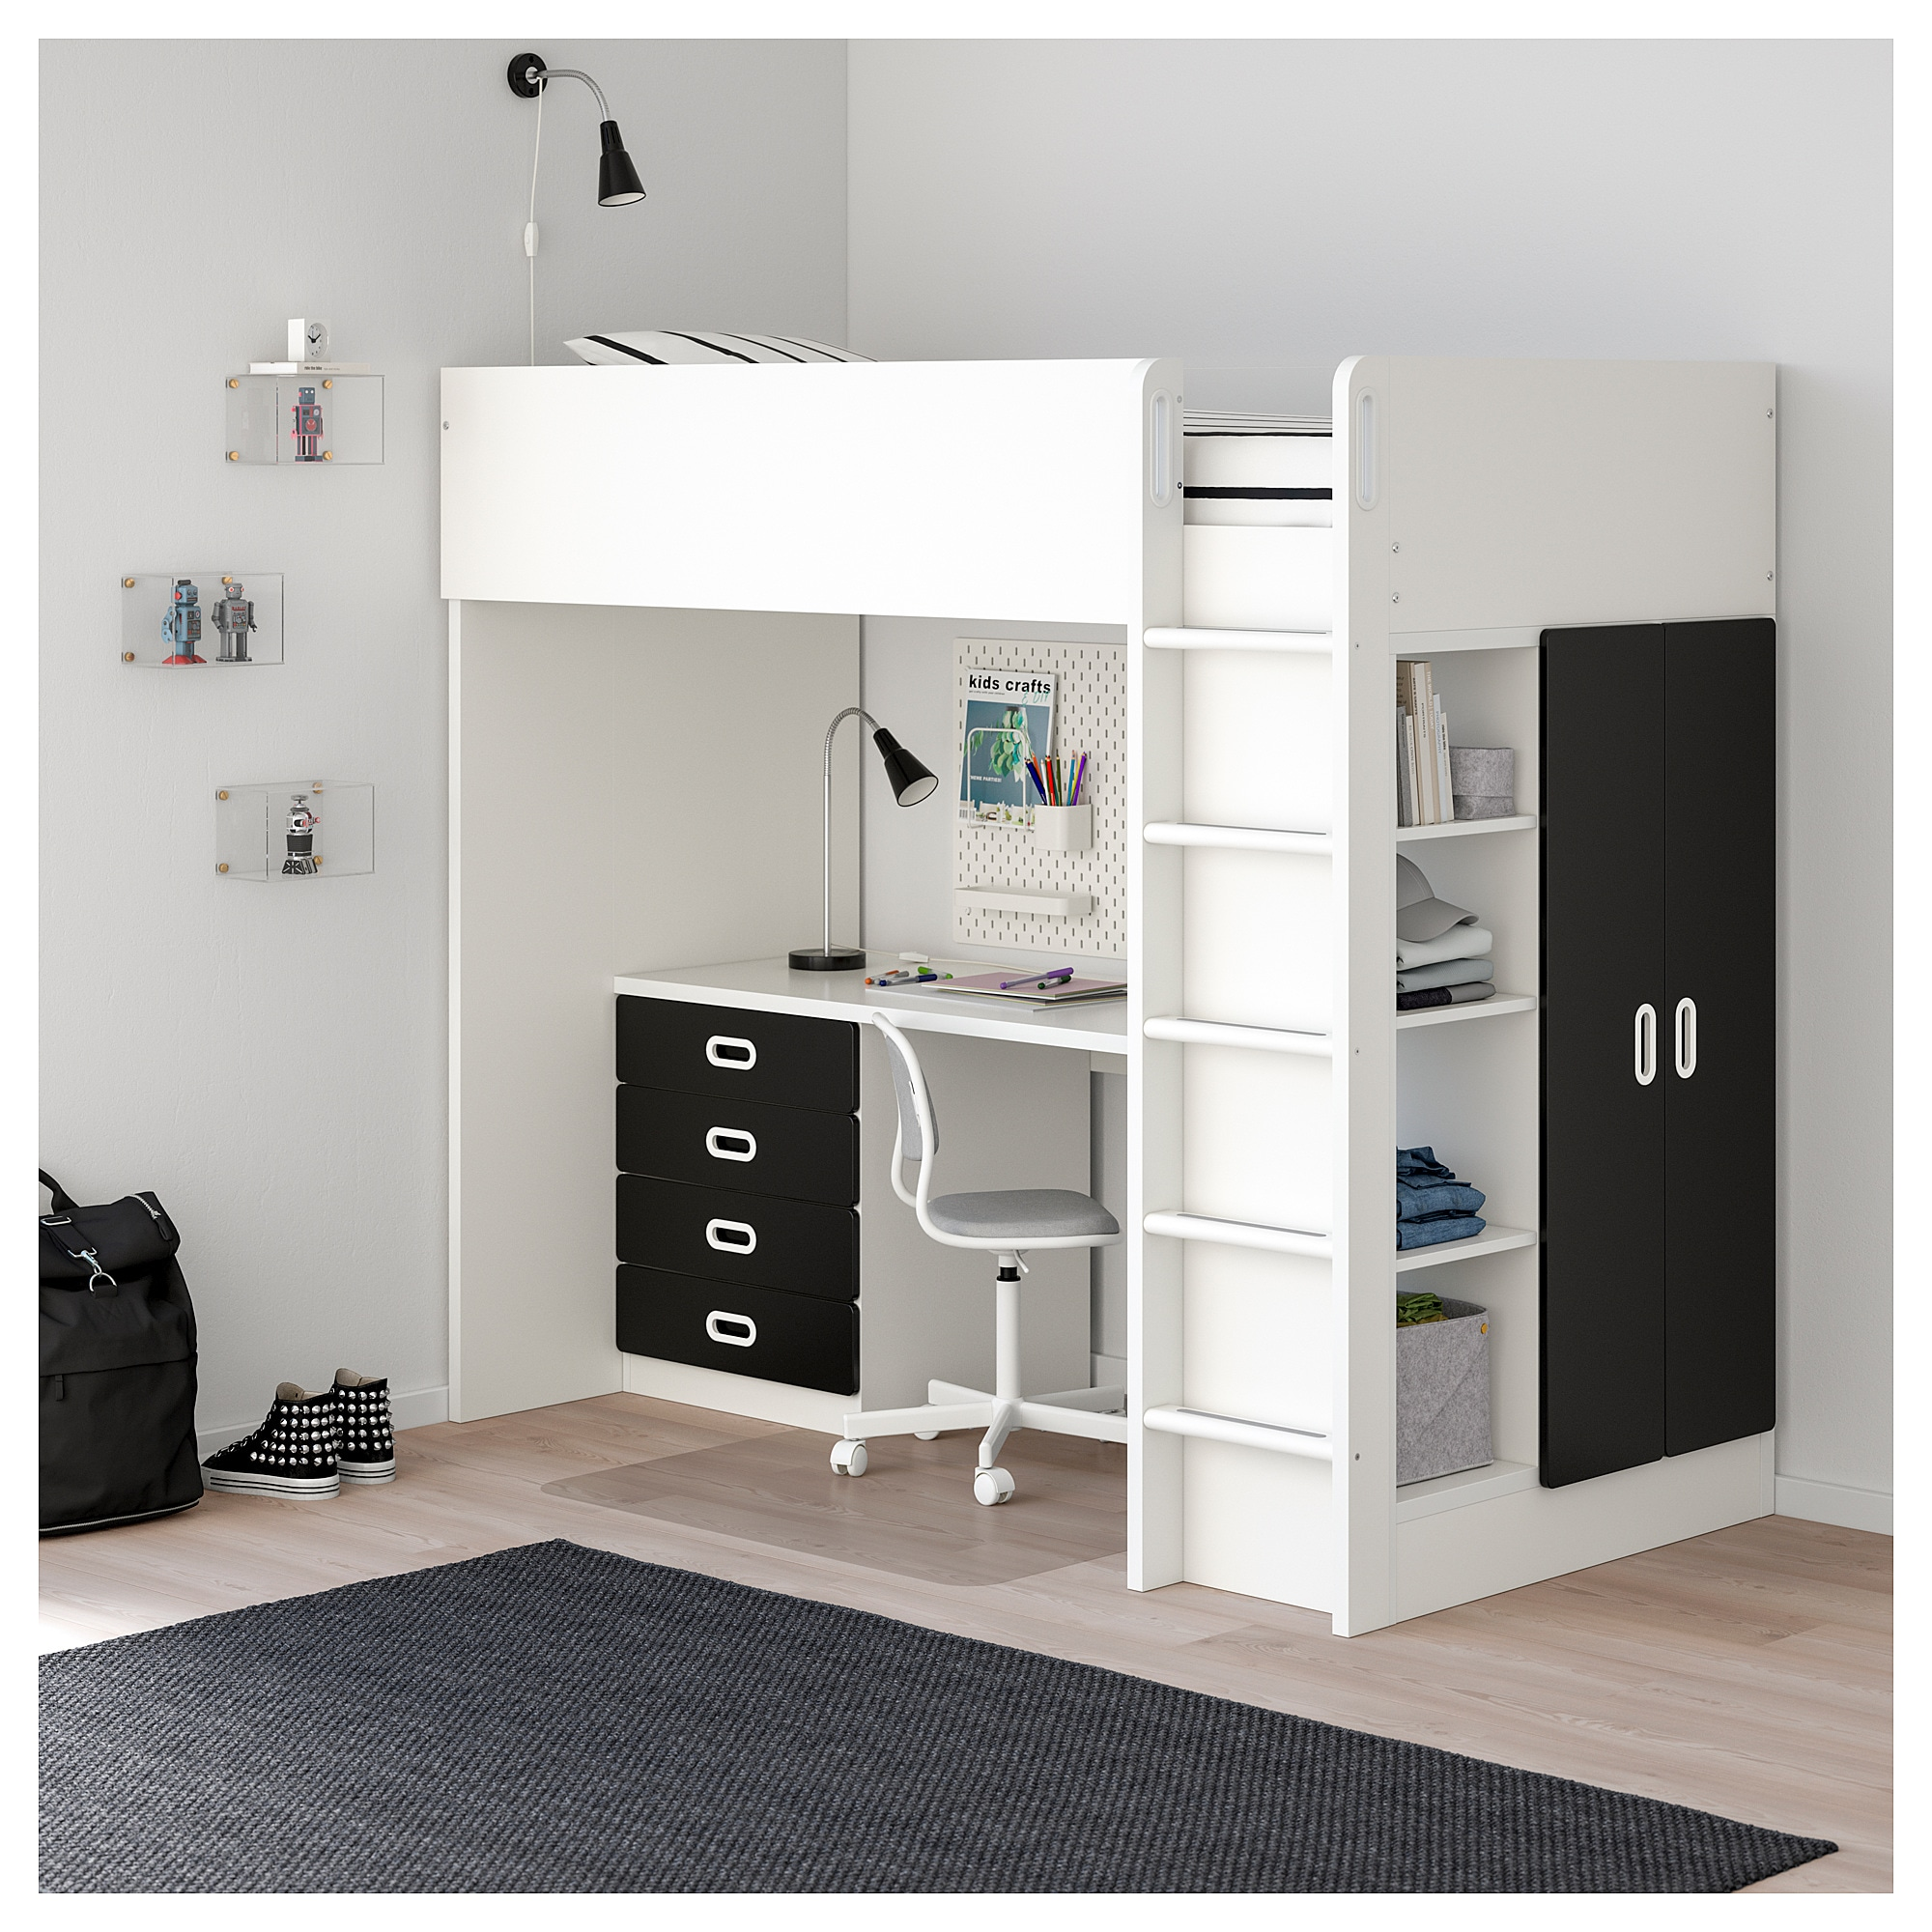 Stapelbed Ikea 80 X 200.Loft Bed Combo W 4 Drawers 2 Doors Stuva Fritids White Blackboard Surface